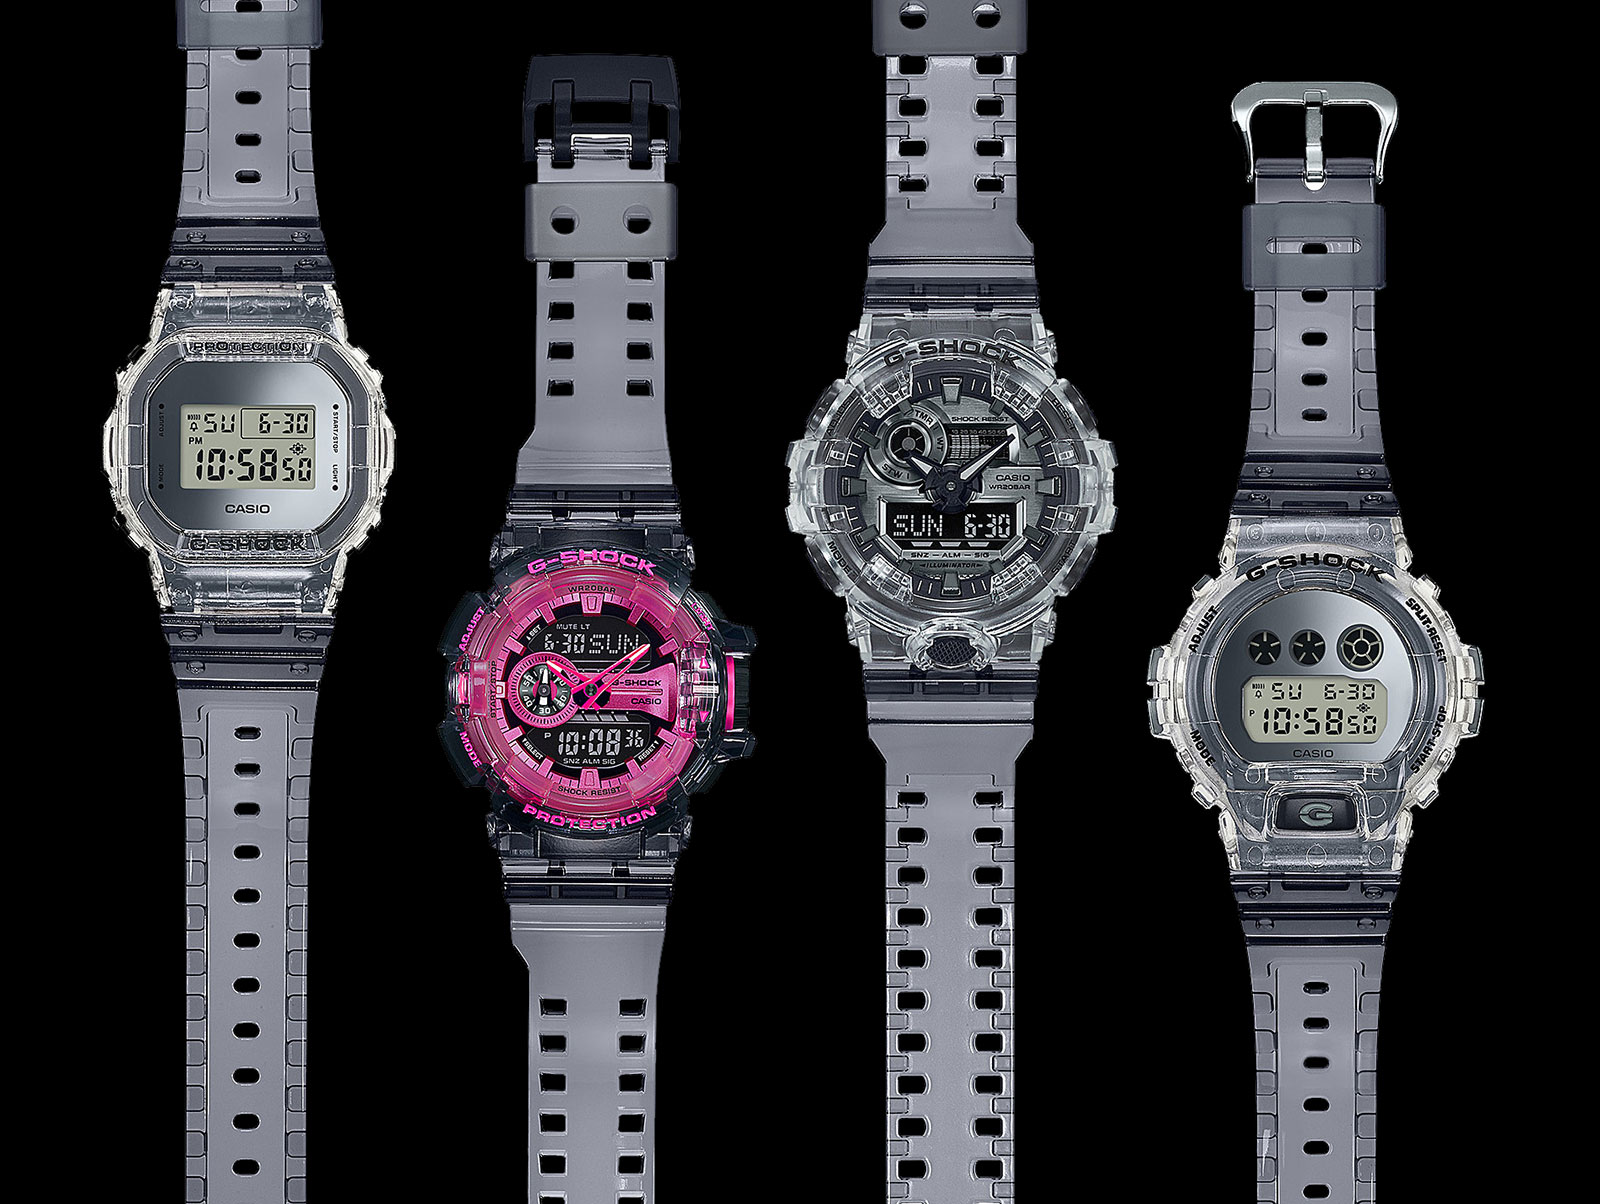 G shock Clear Skeleton Series